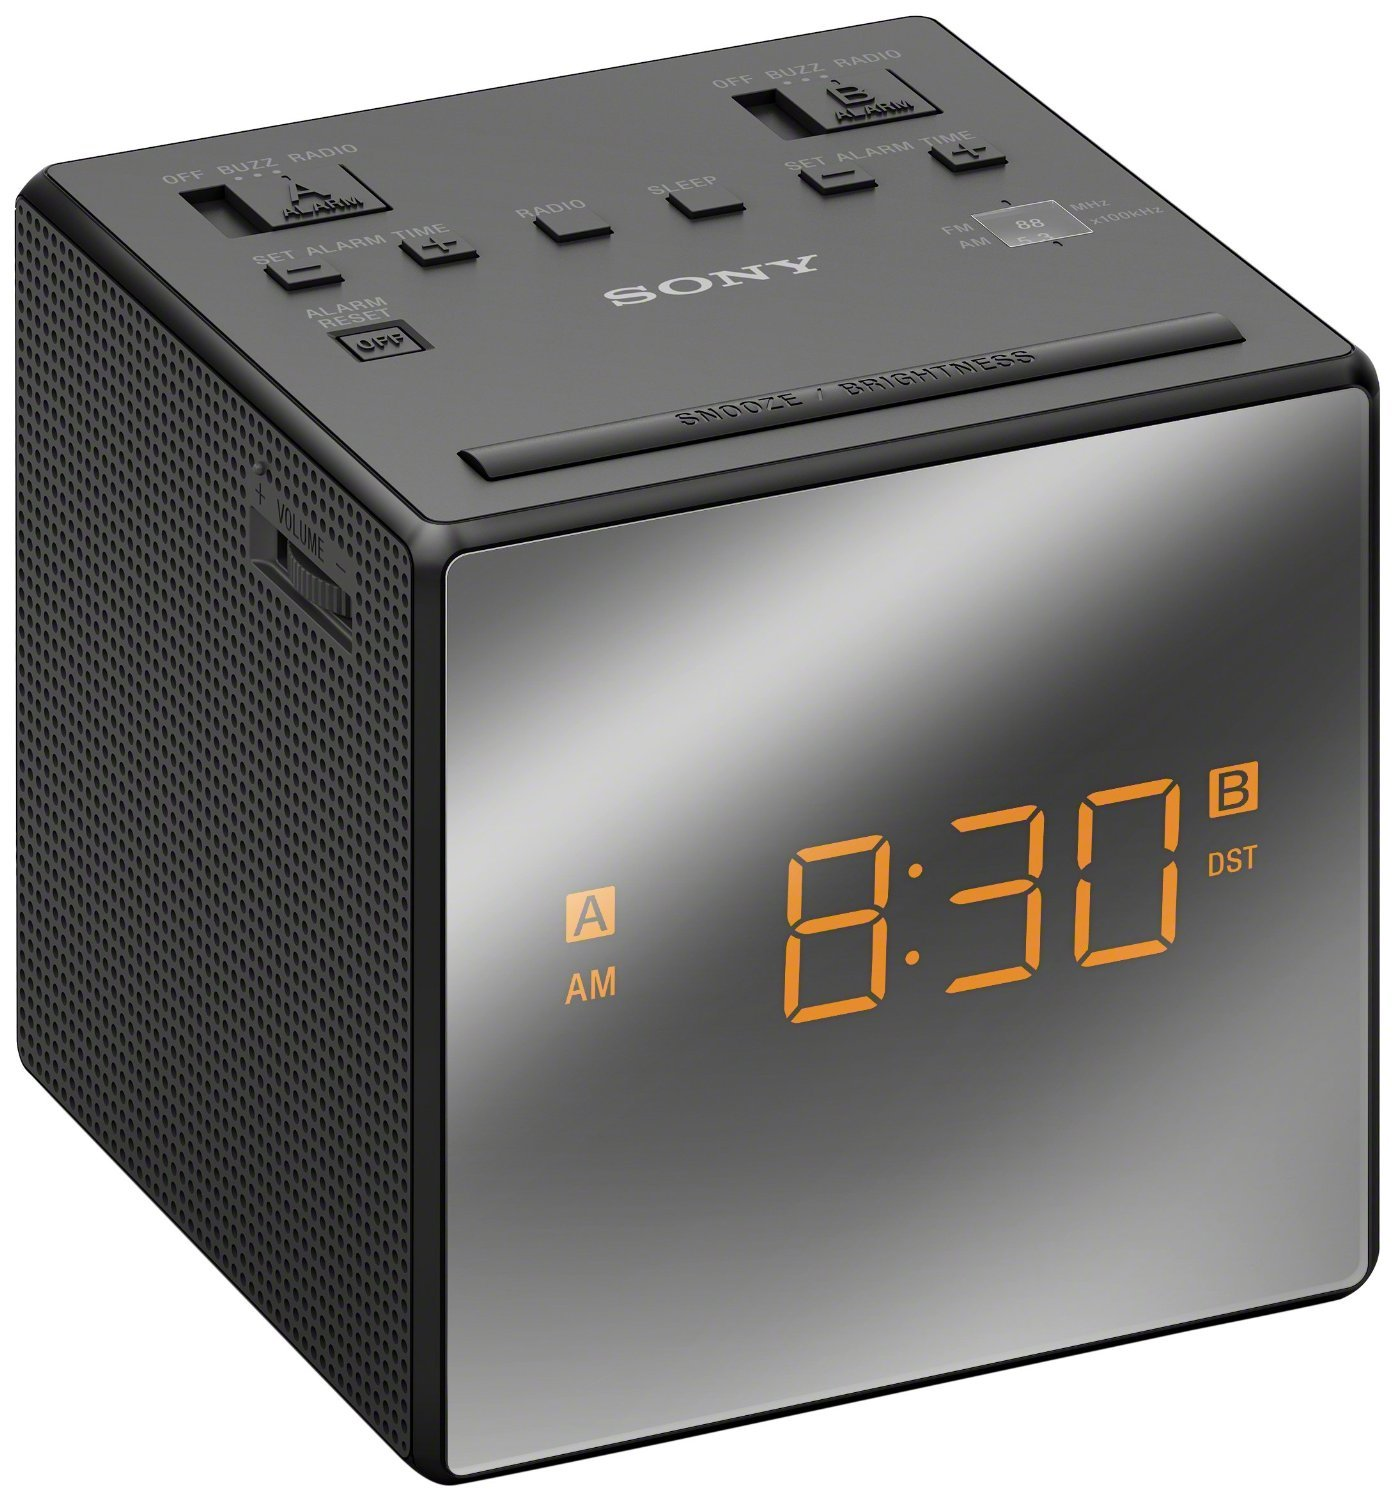 cheap clock radio manual find clock radio manual deals on line at rh guide alibaba com sony radio manual download sony radio manual